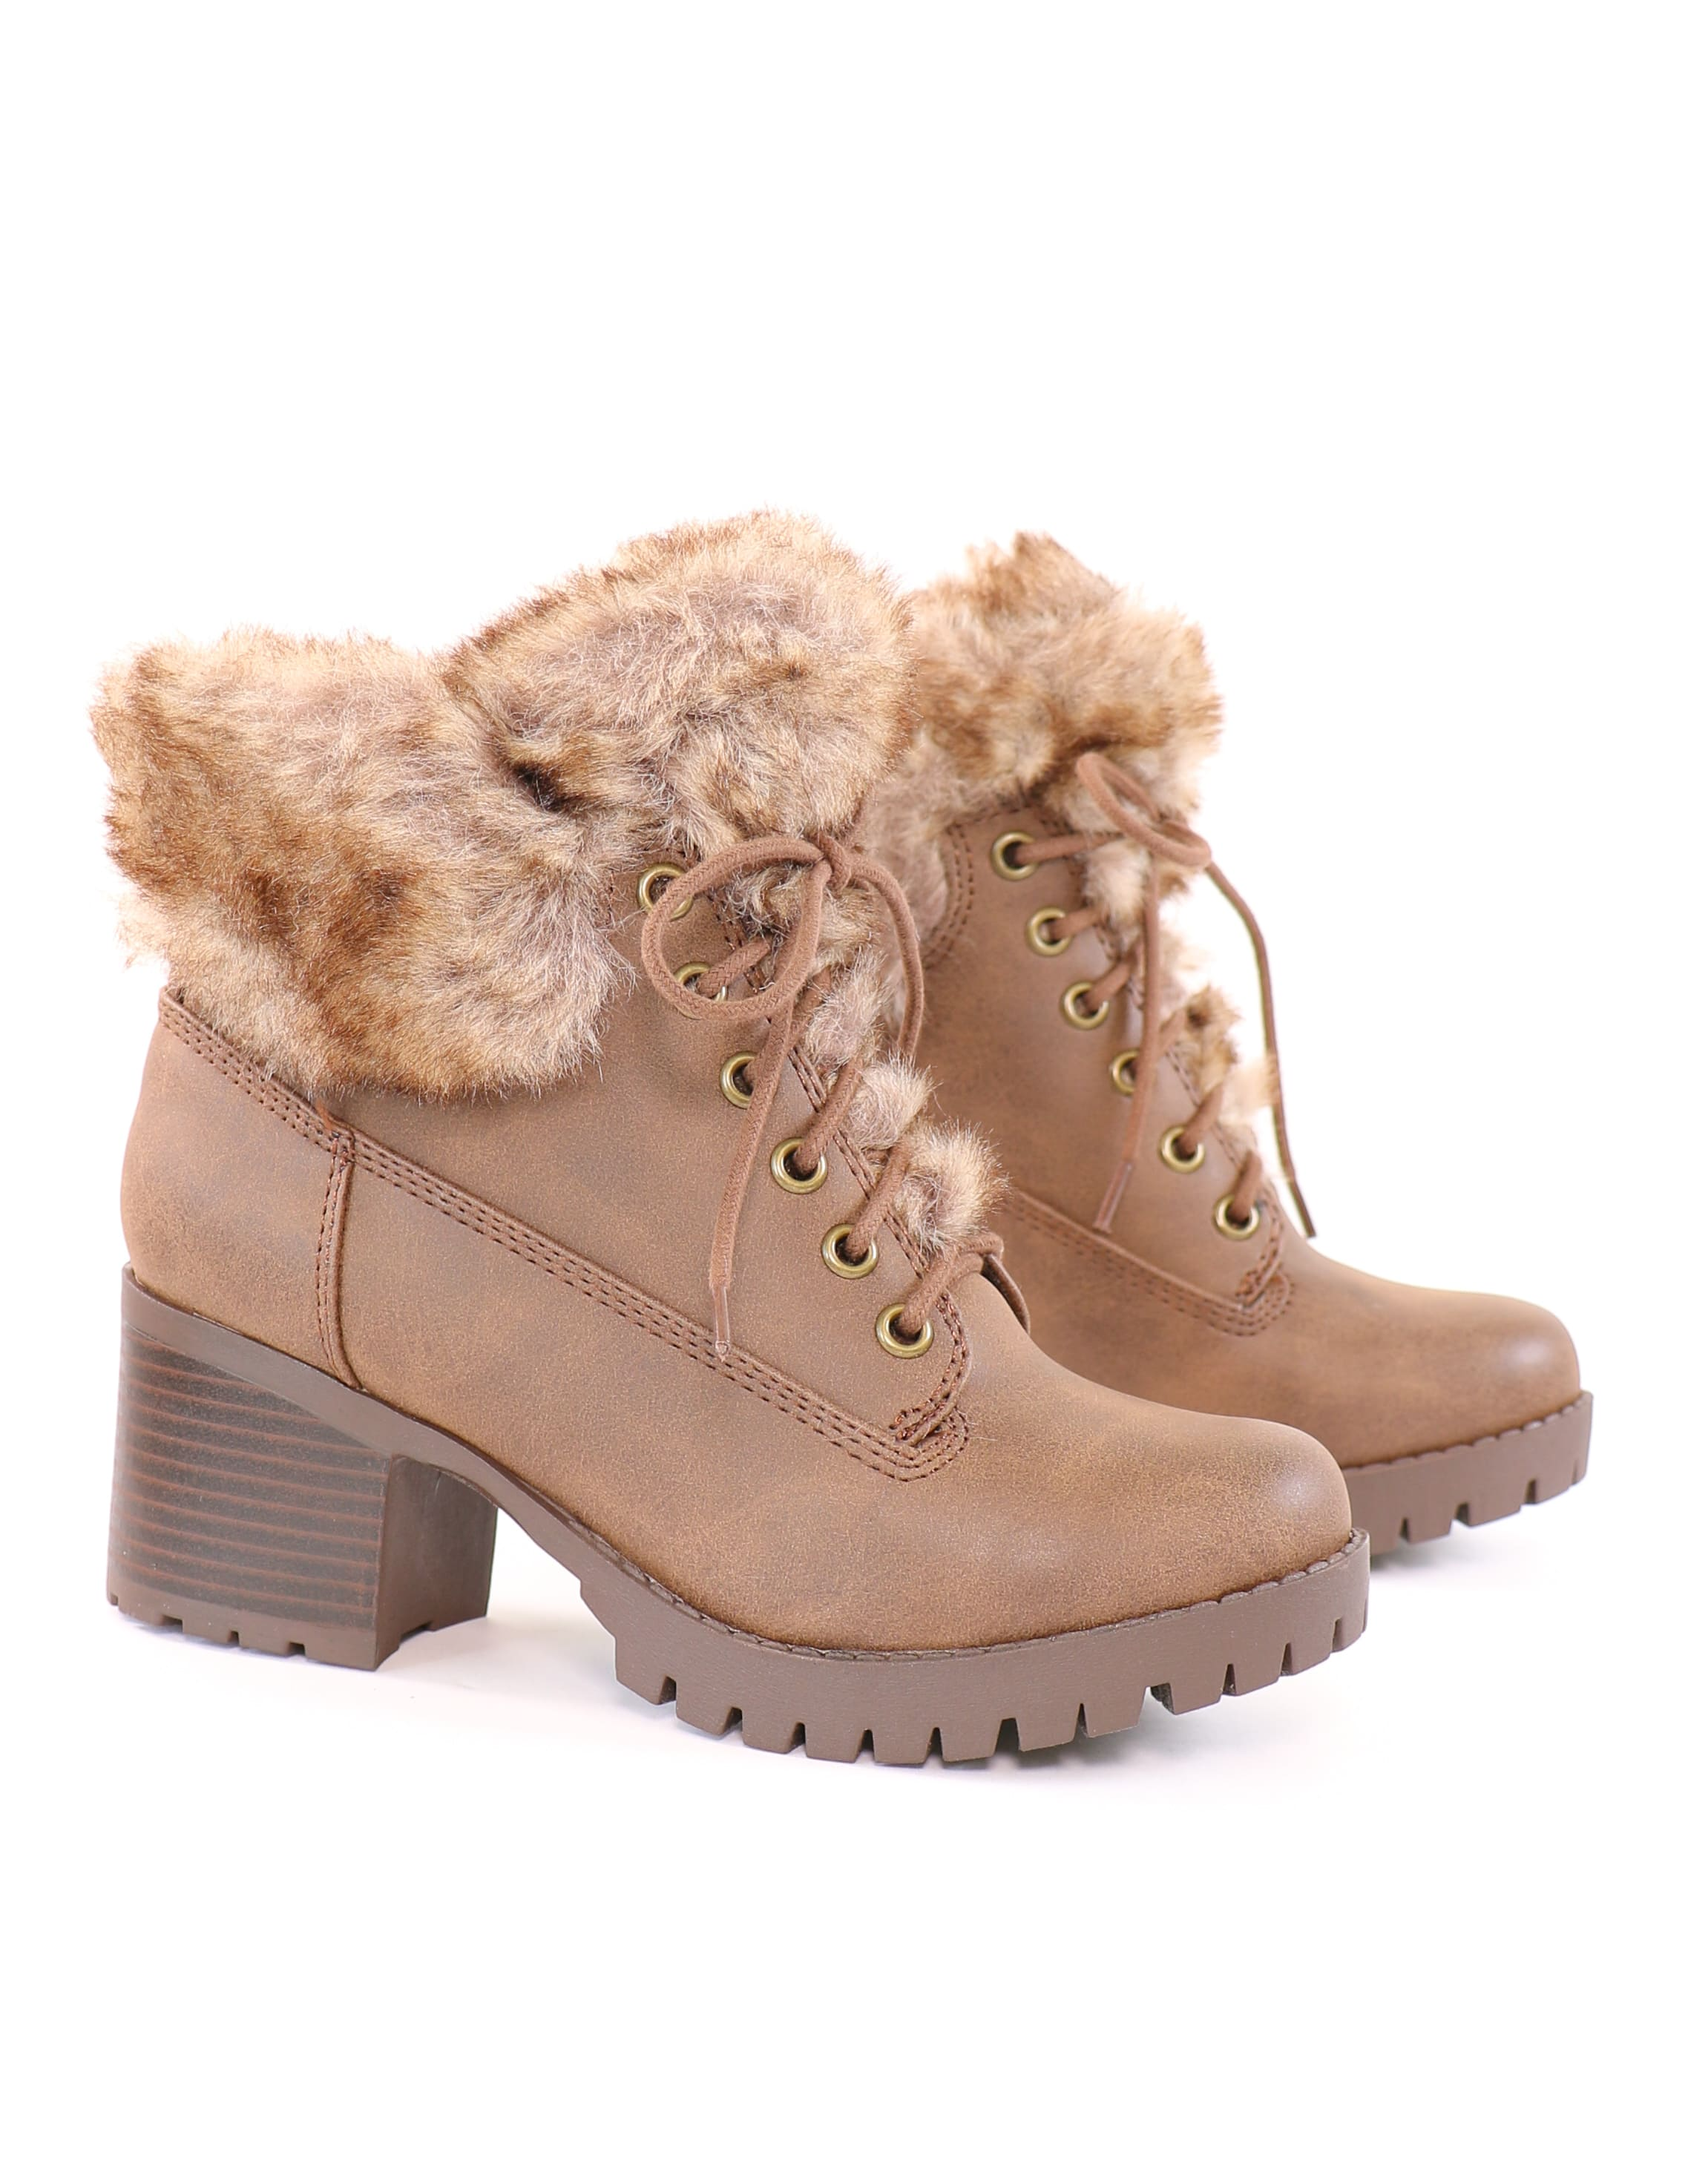 Faux fur cocoa cozy lace up lug booties in brown - elle bleu shoes